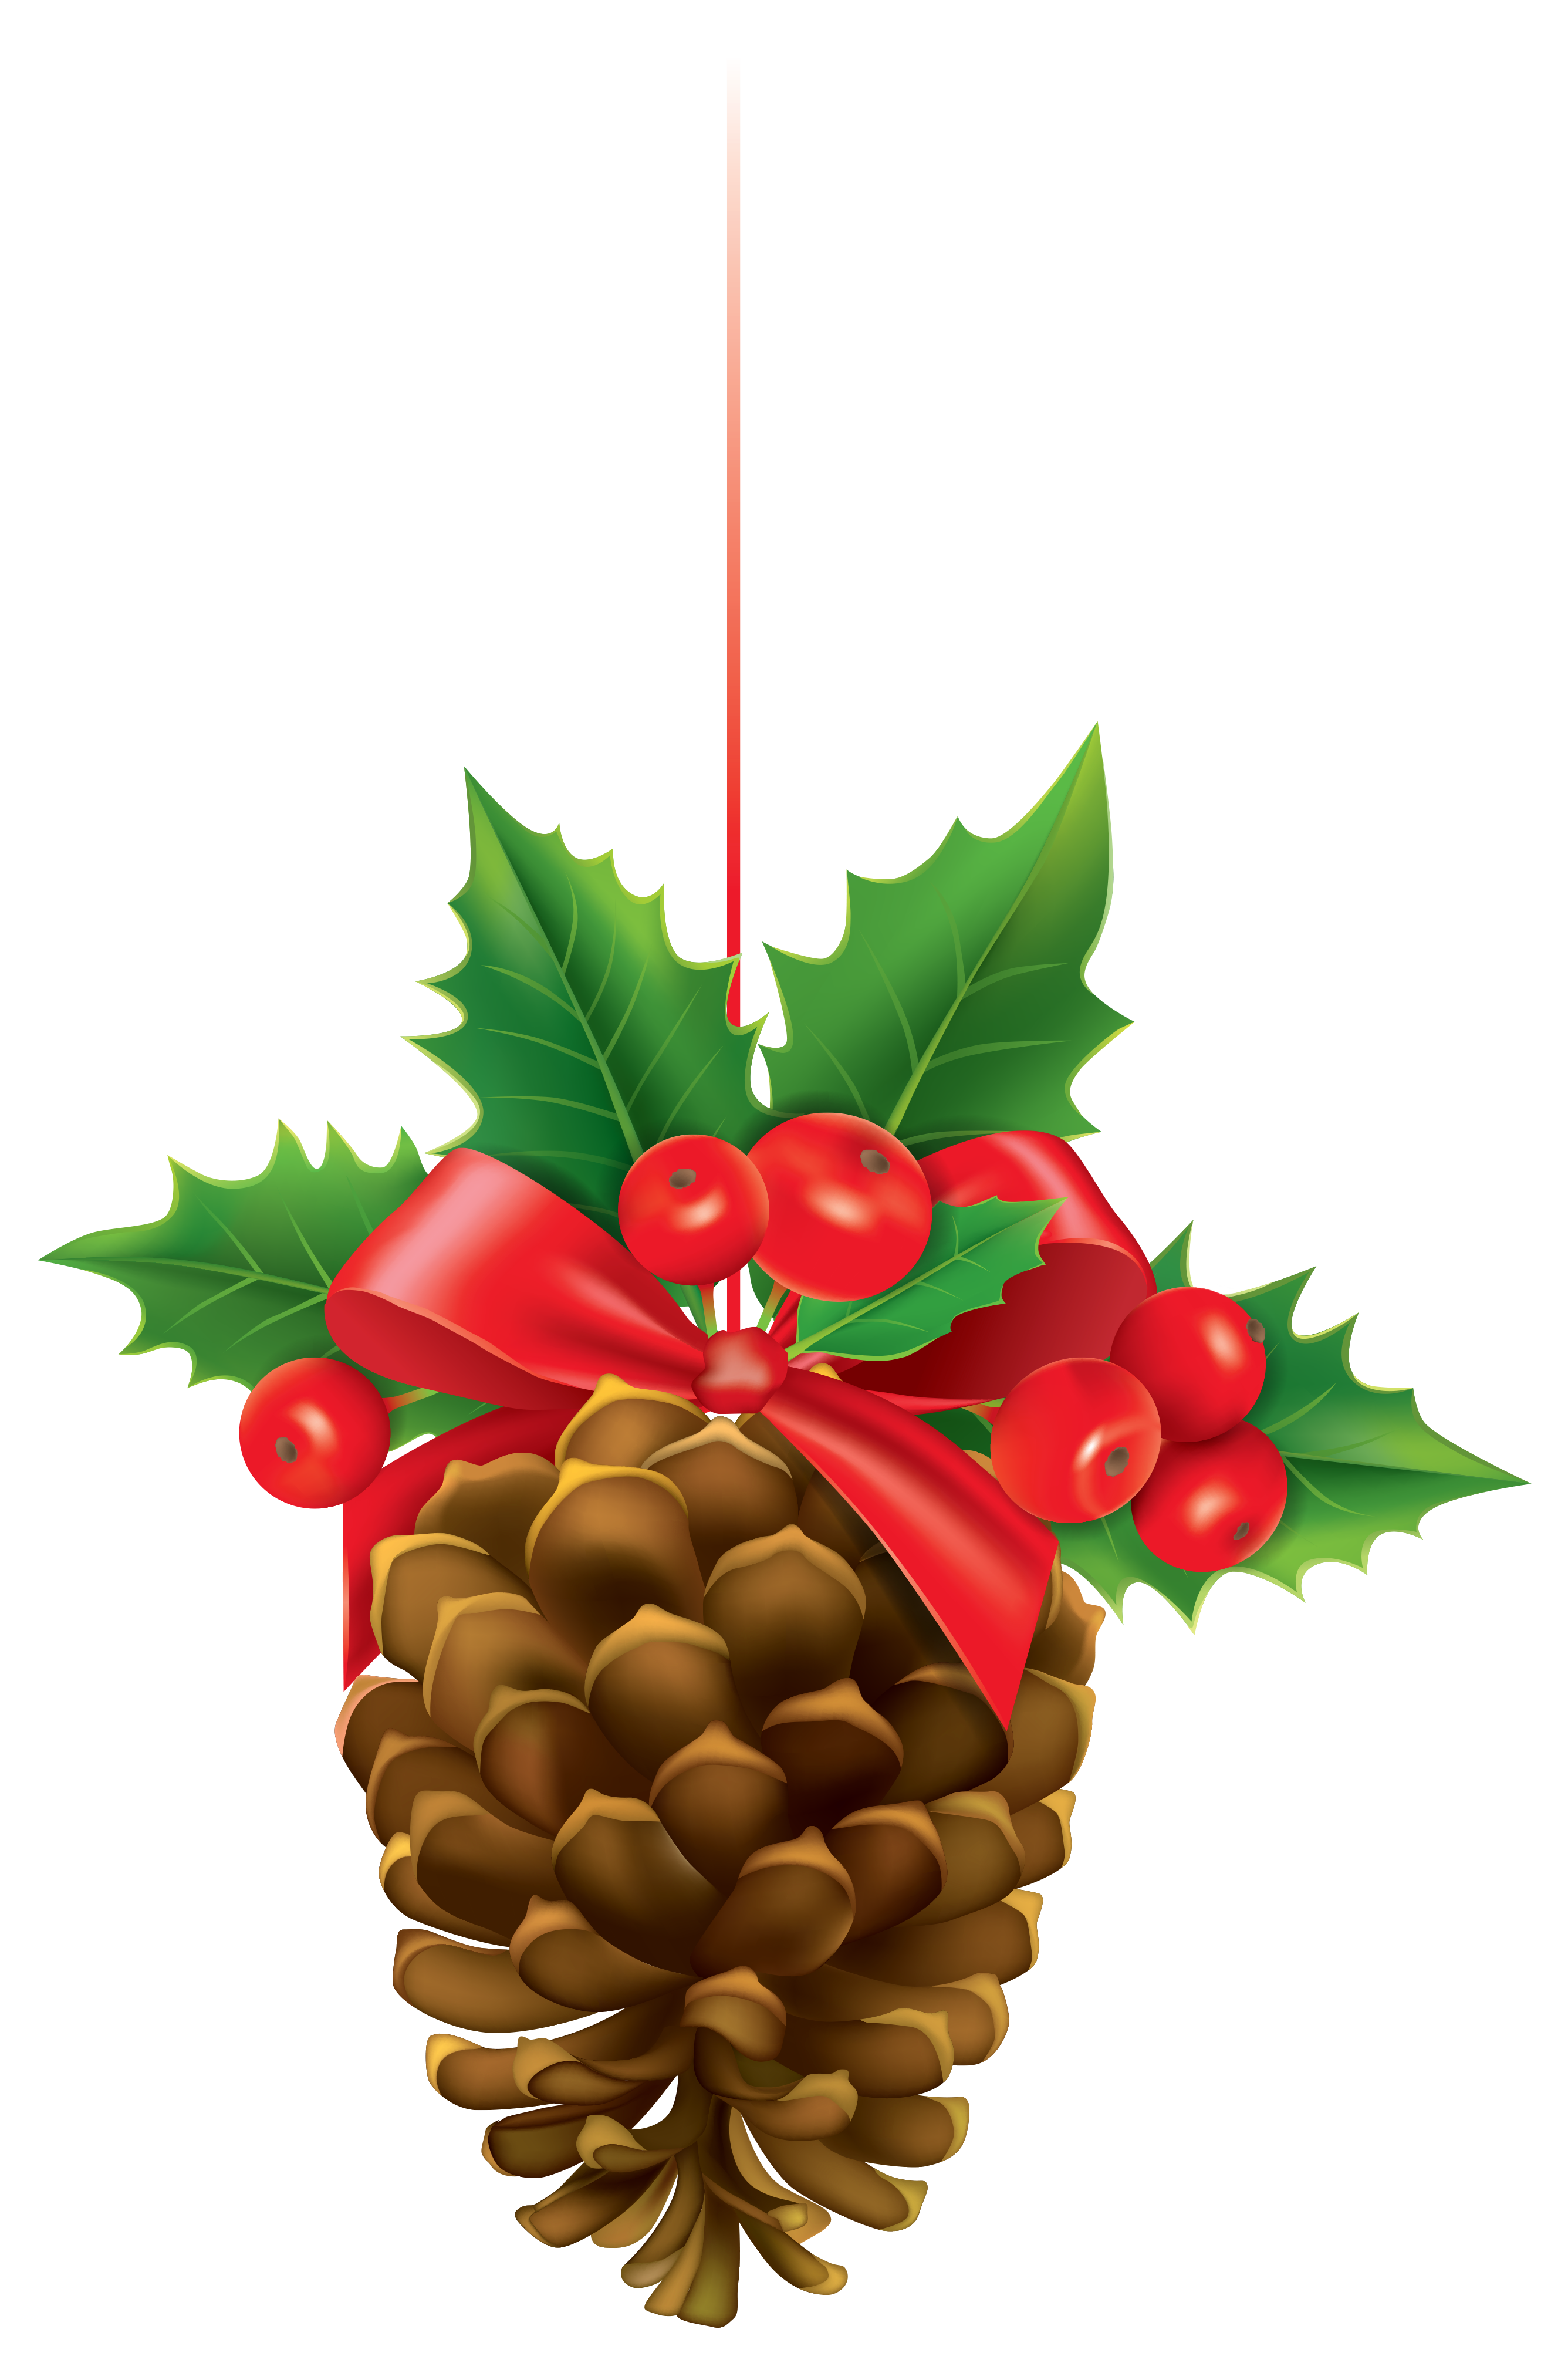 Scale clipart animated. Christmas pinecone with mistletoe